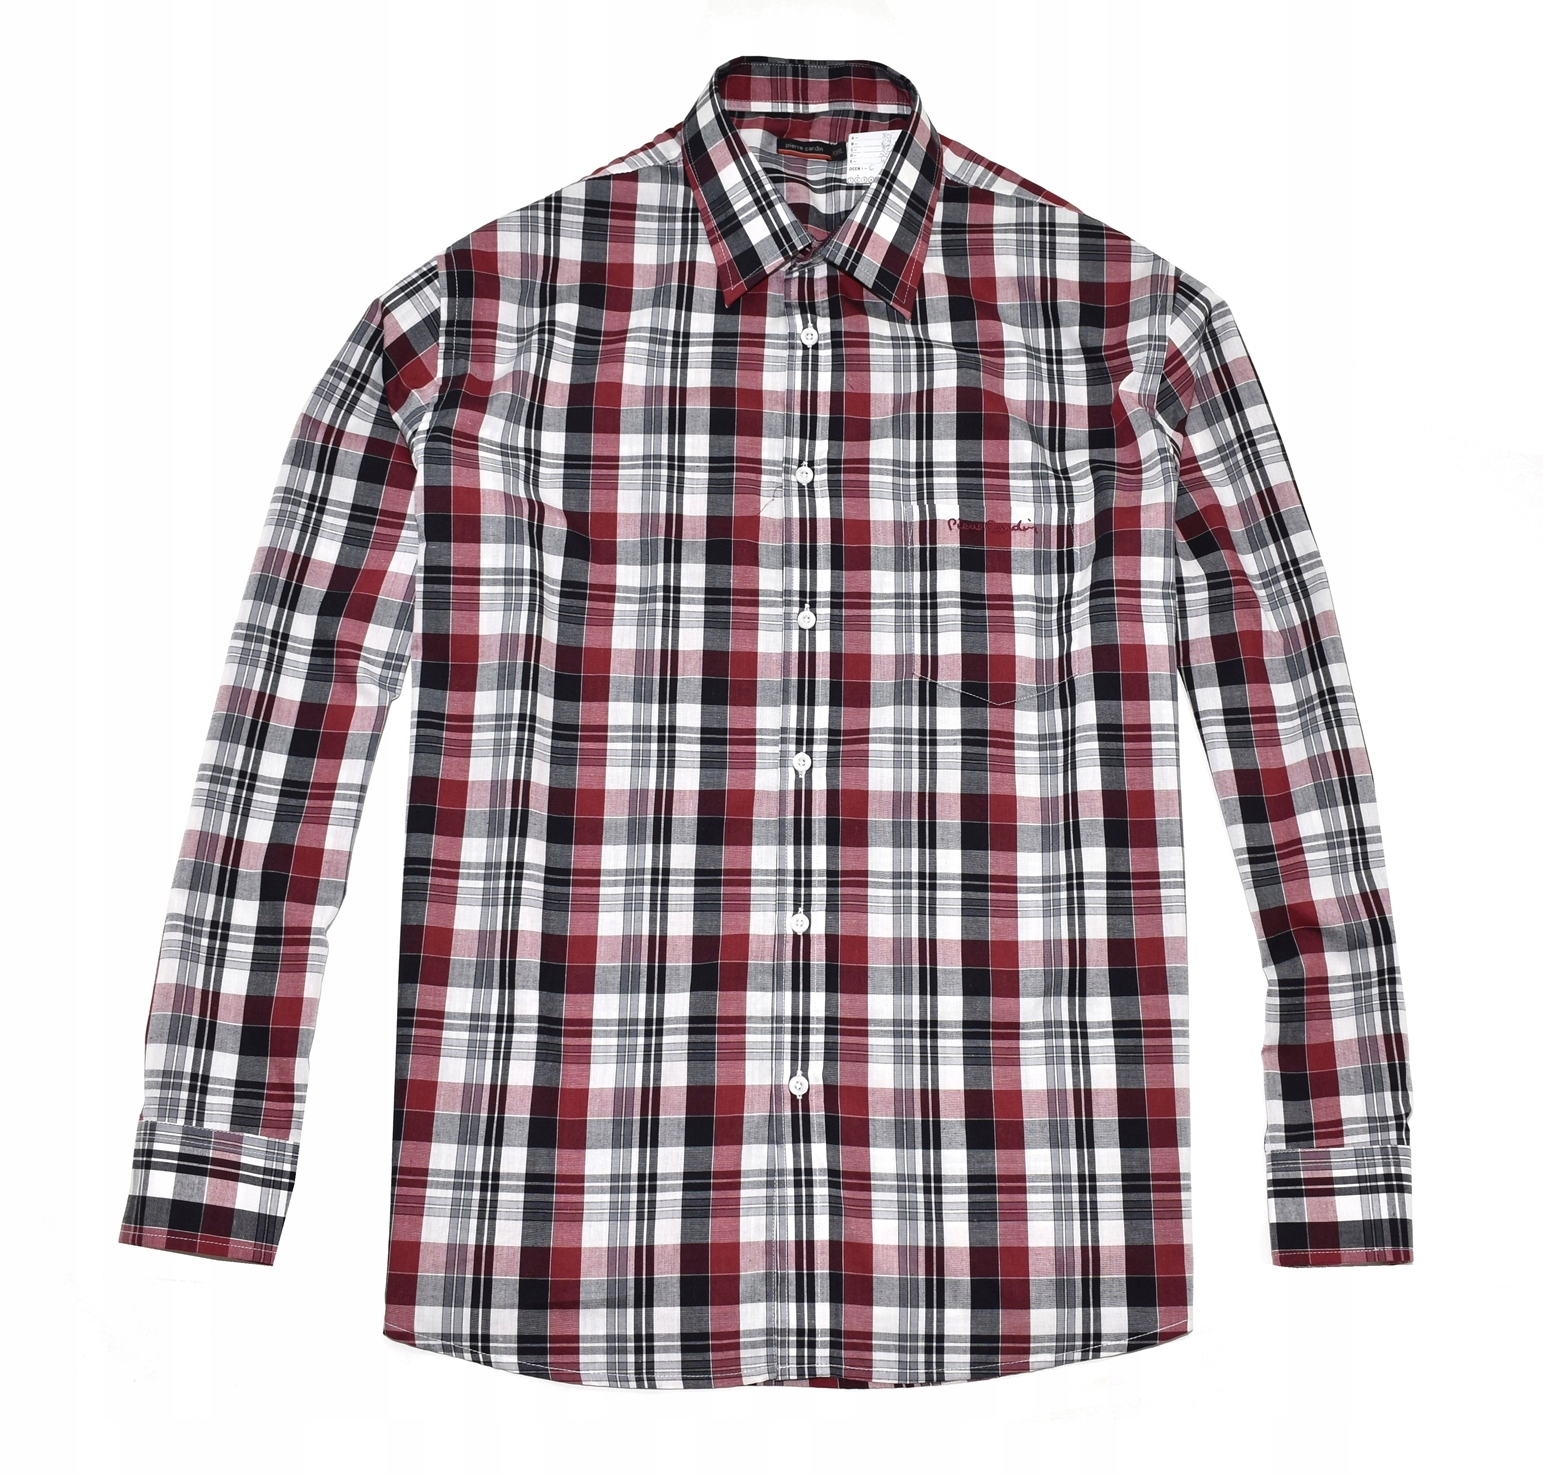 MM 326 ADVISE_ORYGINAL TAILORED DOTS STYLE SHIRT_L